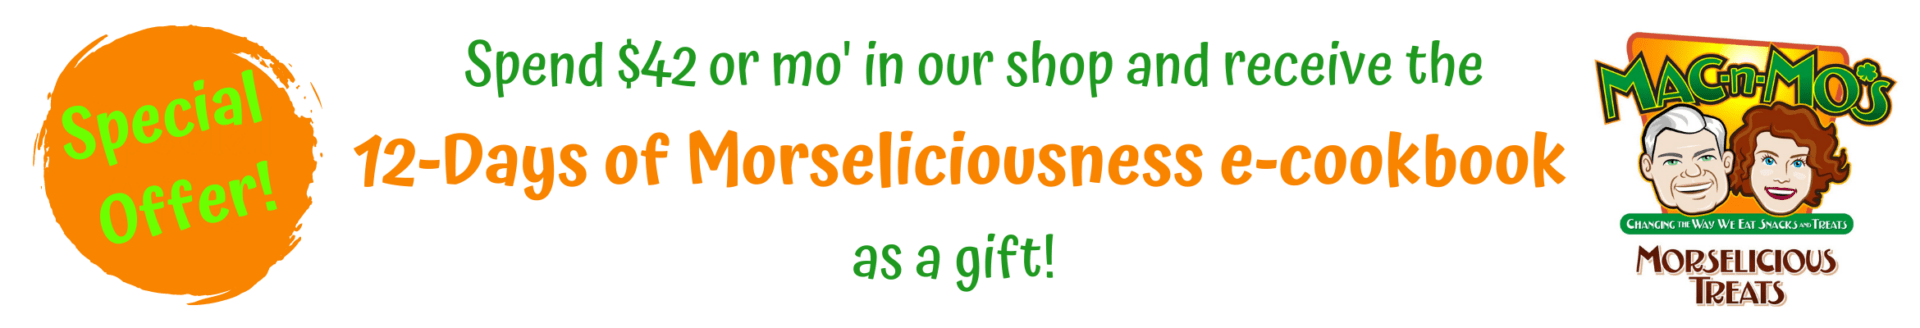 Special offer: spend $42 or mo' in our shop and receive my 12-Days of Morseliciousness e-cookbook as a gift!